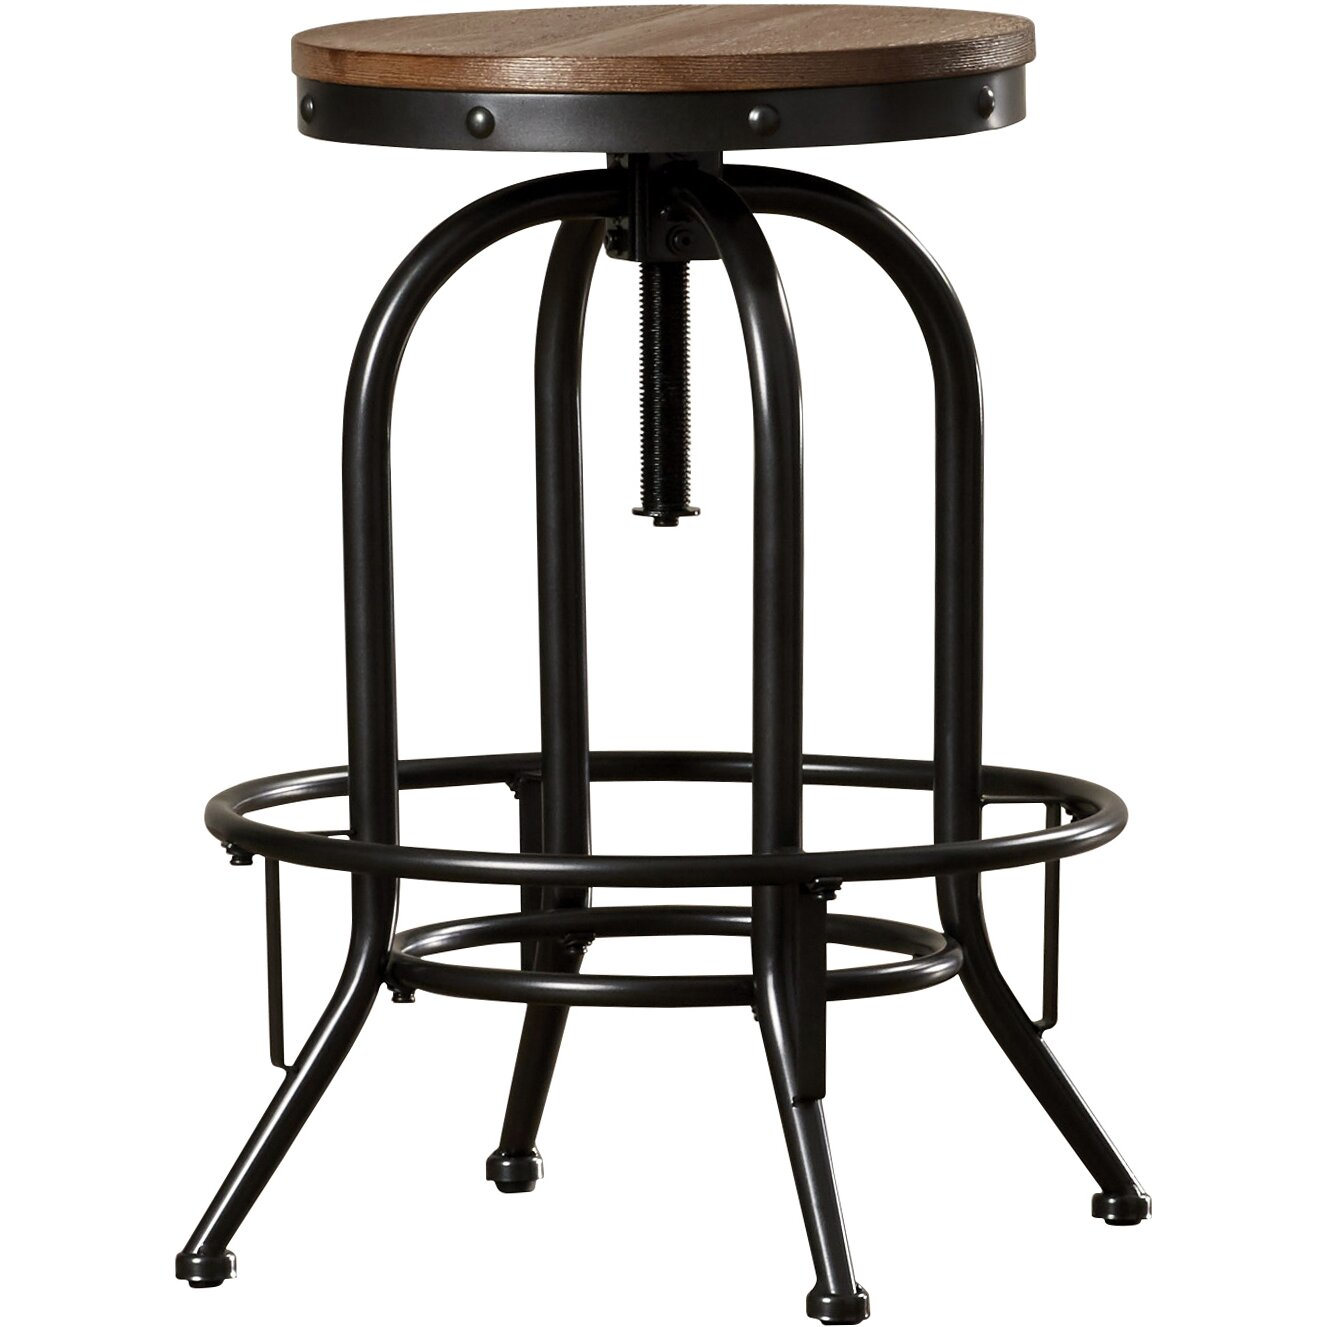 Trent austin design empire adjustable height swivel bar stool reviews wayfair - Average height of bar stools ...